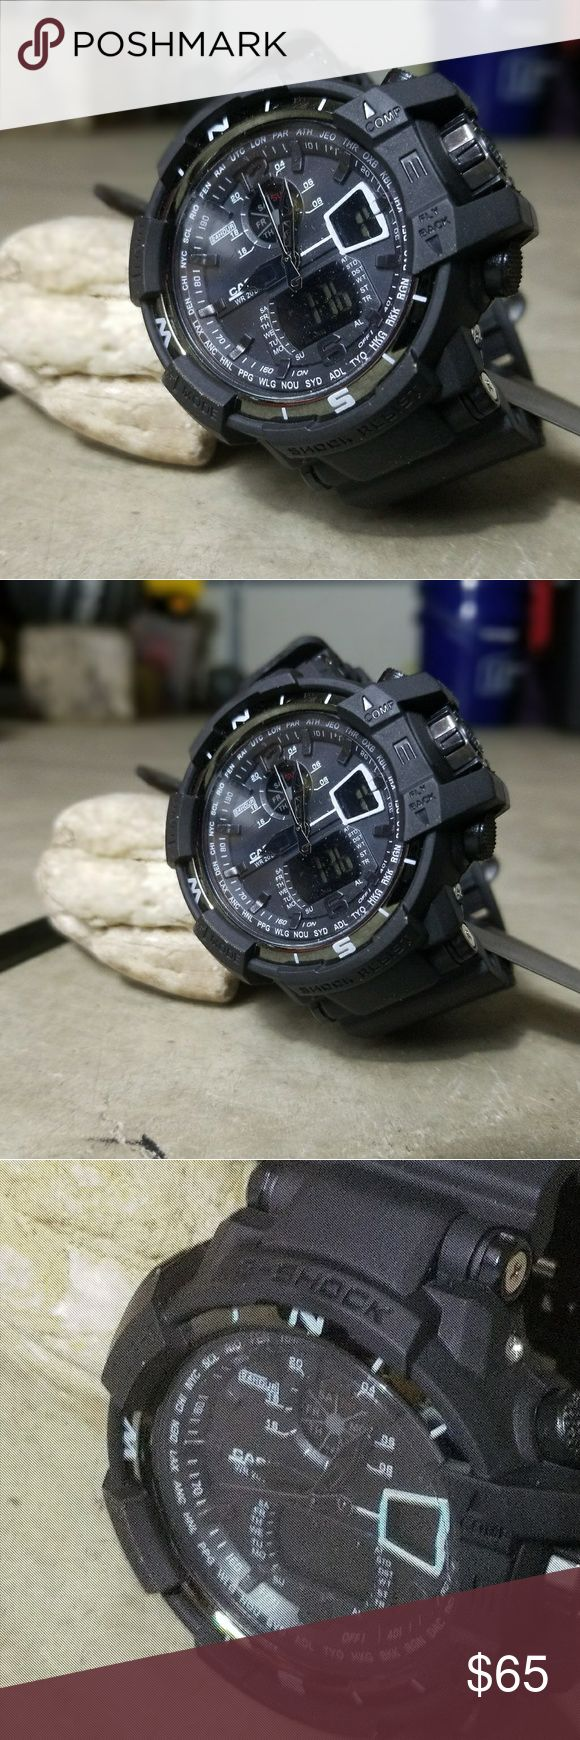 G-shock Black Series 3 G-Shock watch. Equipped with a venture technology. Enjoy life with the benefit of a shock absorbing, impact resistant, and anti-magnetic structure. A clean stainless steel back provides comfort. Cisco precision technology will keep you on time. Water resistant up to 200 bar. G-Shock Accessories Watches